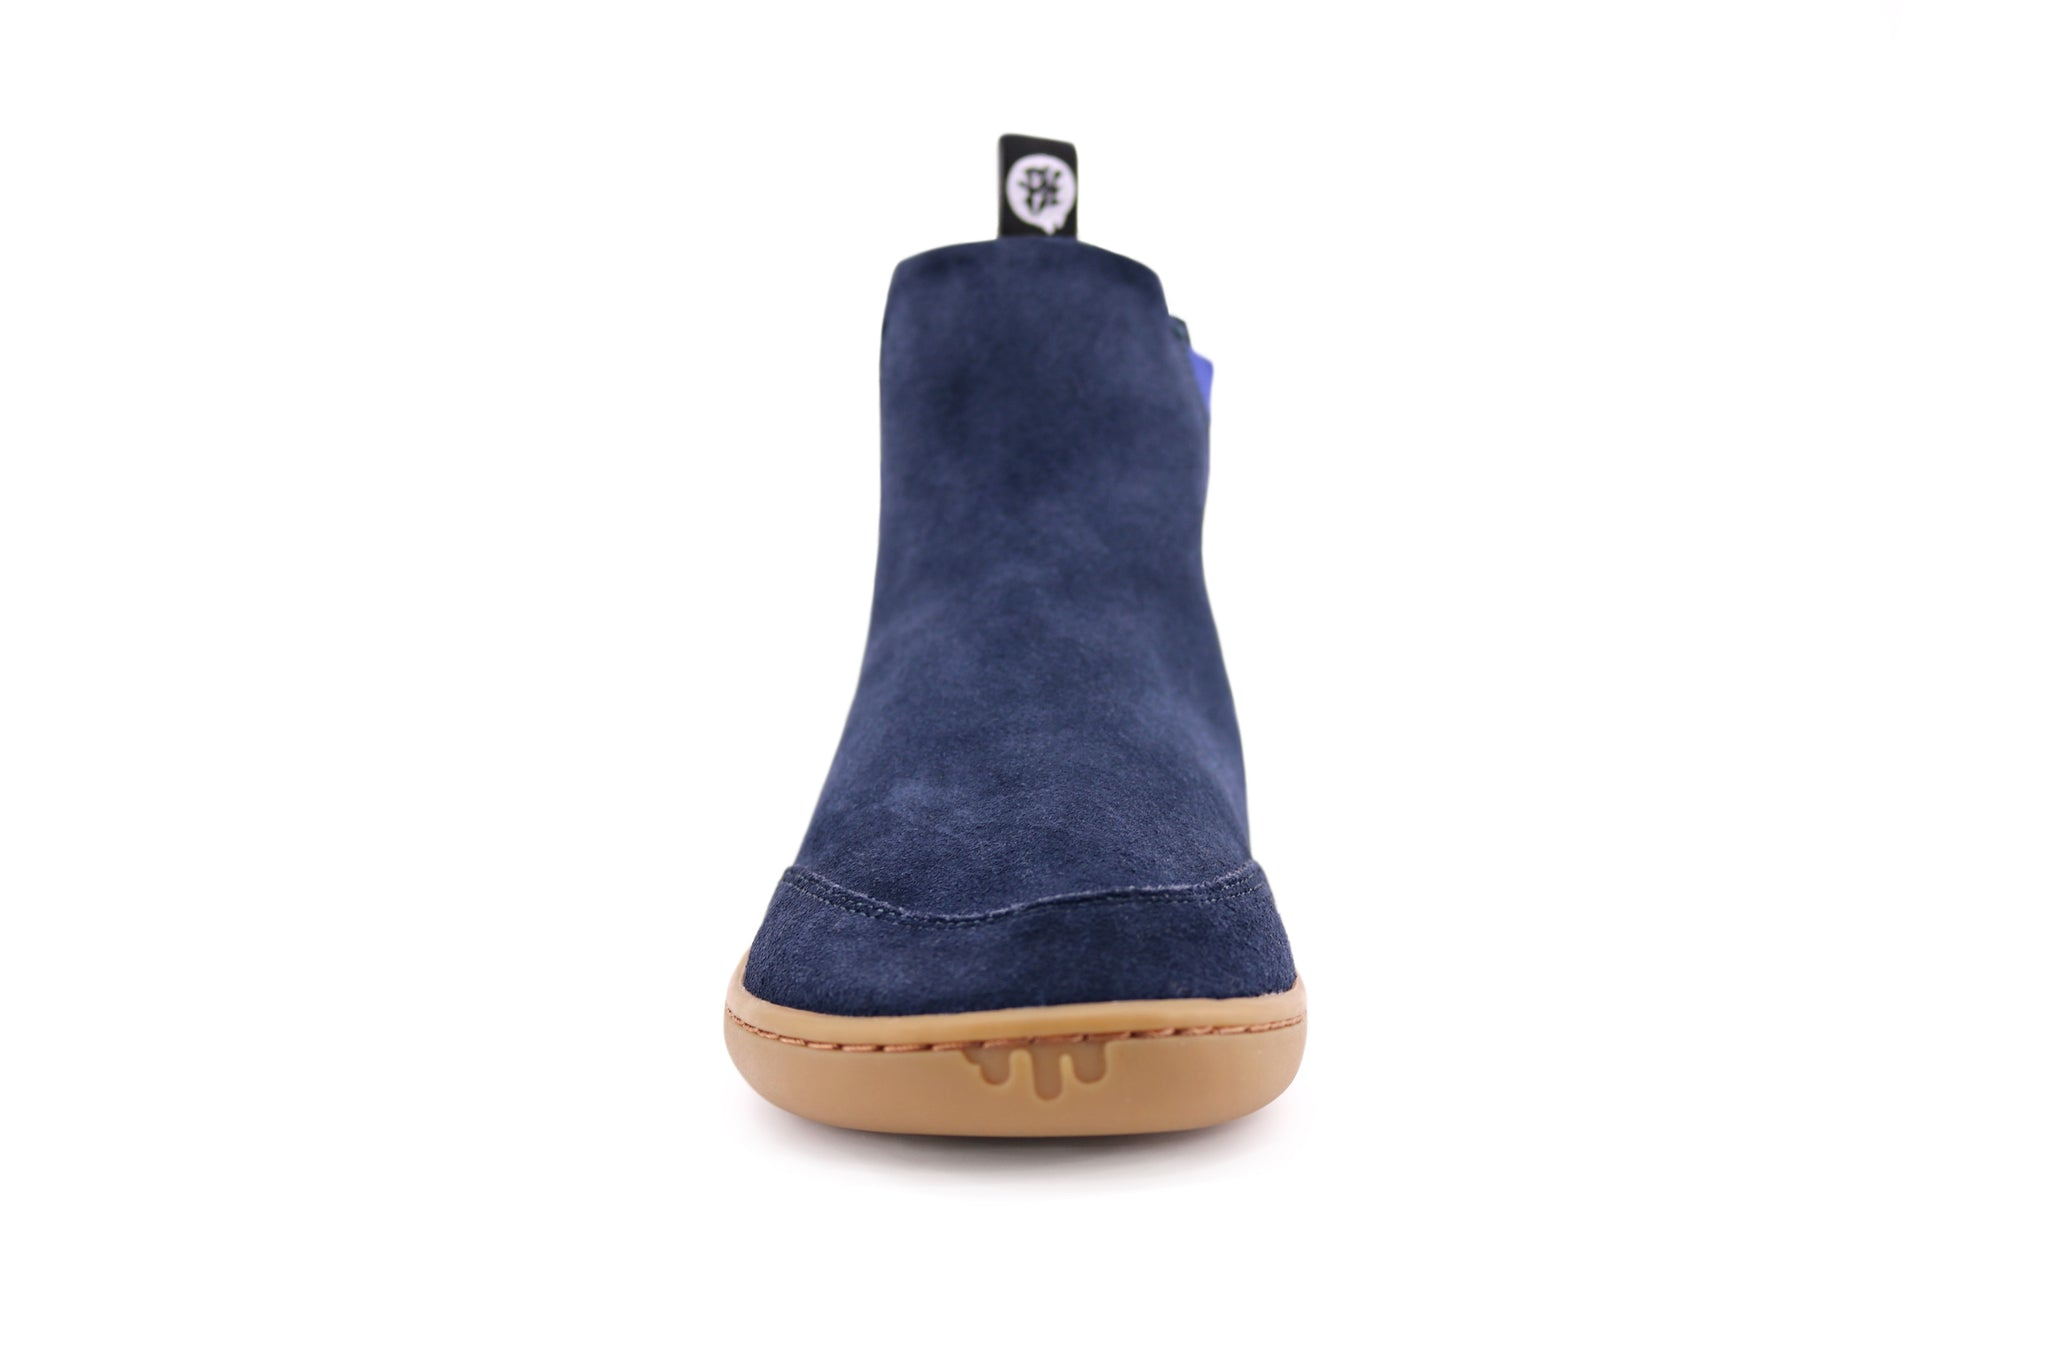 NAVY SUEDE CHELSEA PK FRONT VIEW